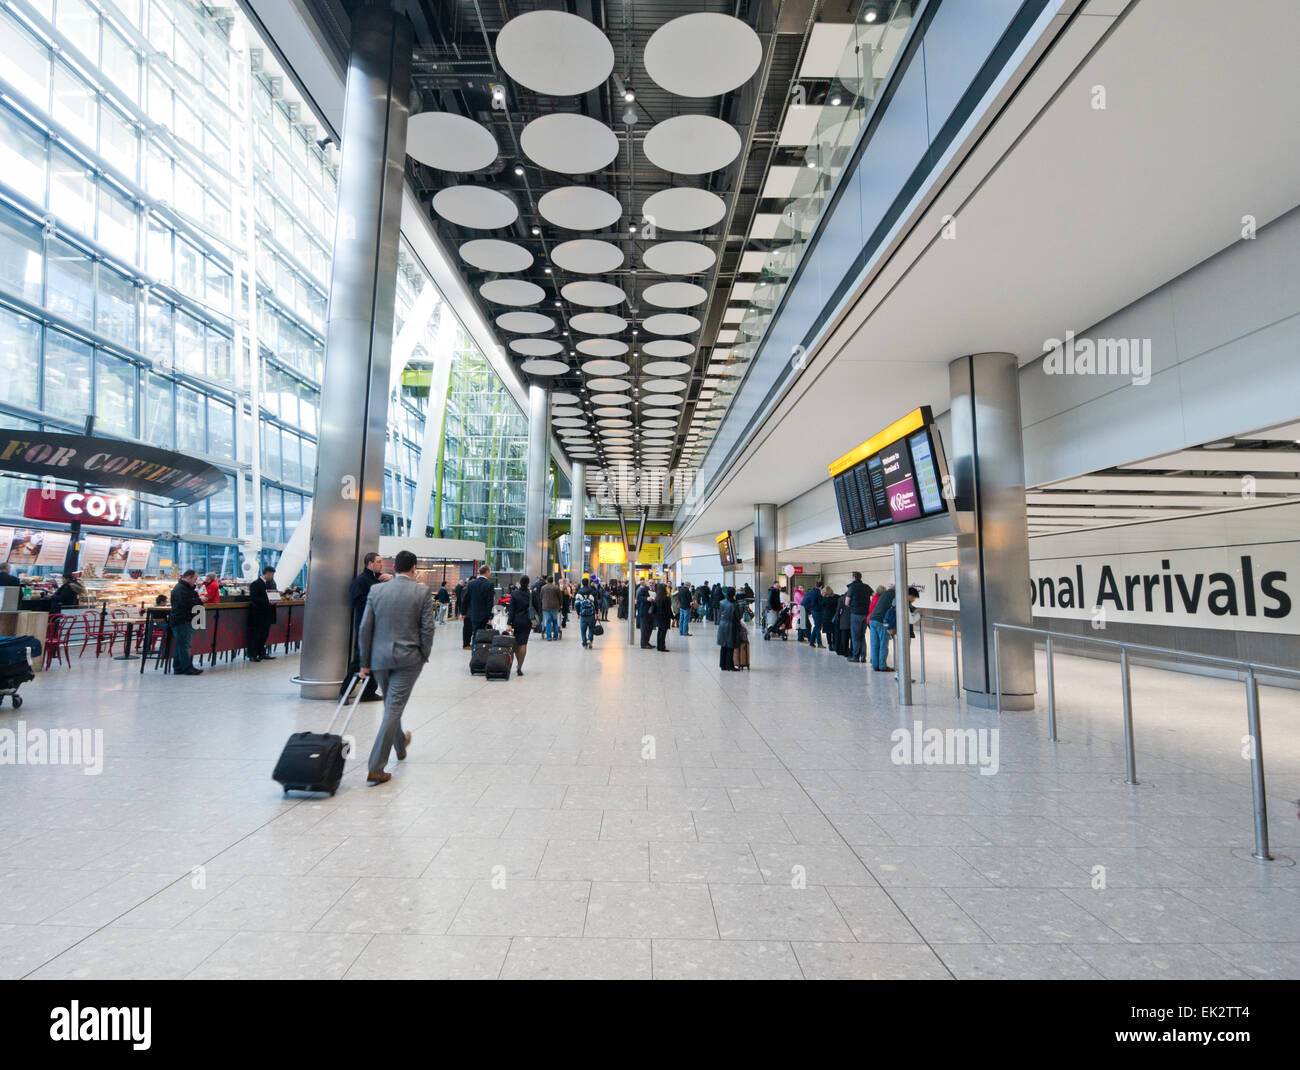 International Arrivals at Heathrow airport in Britain - Stock Image